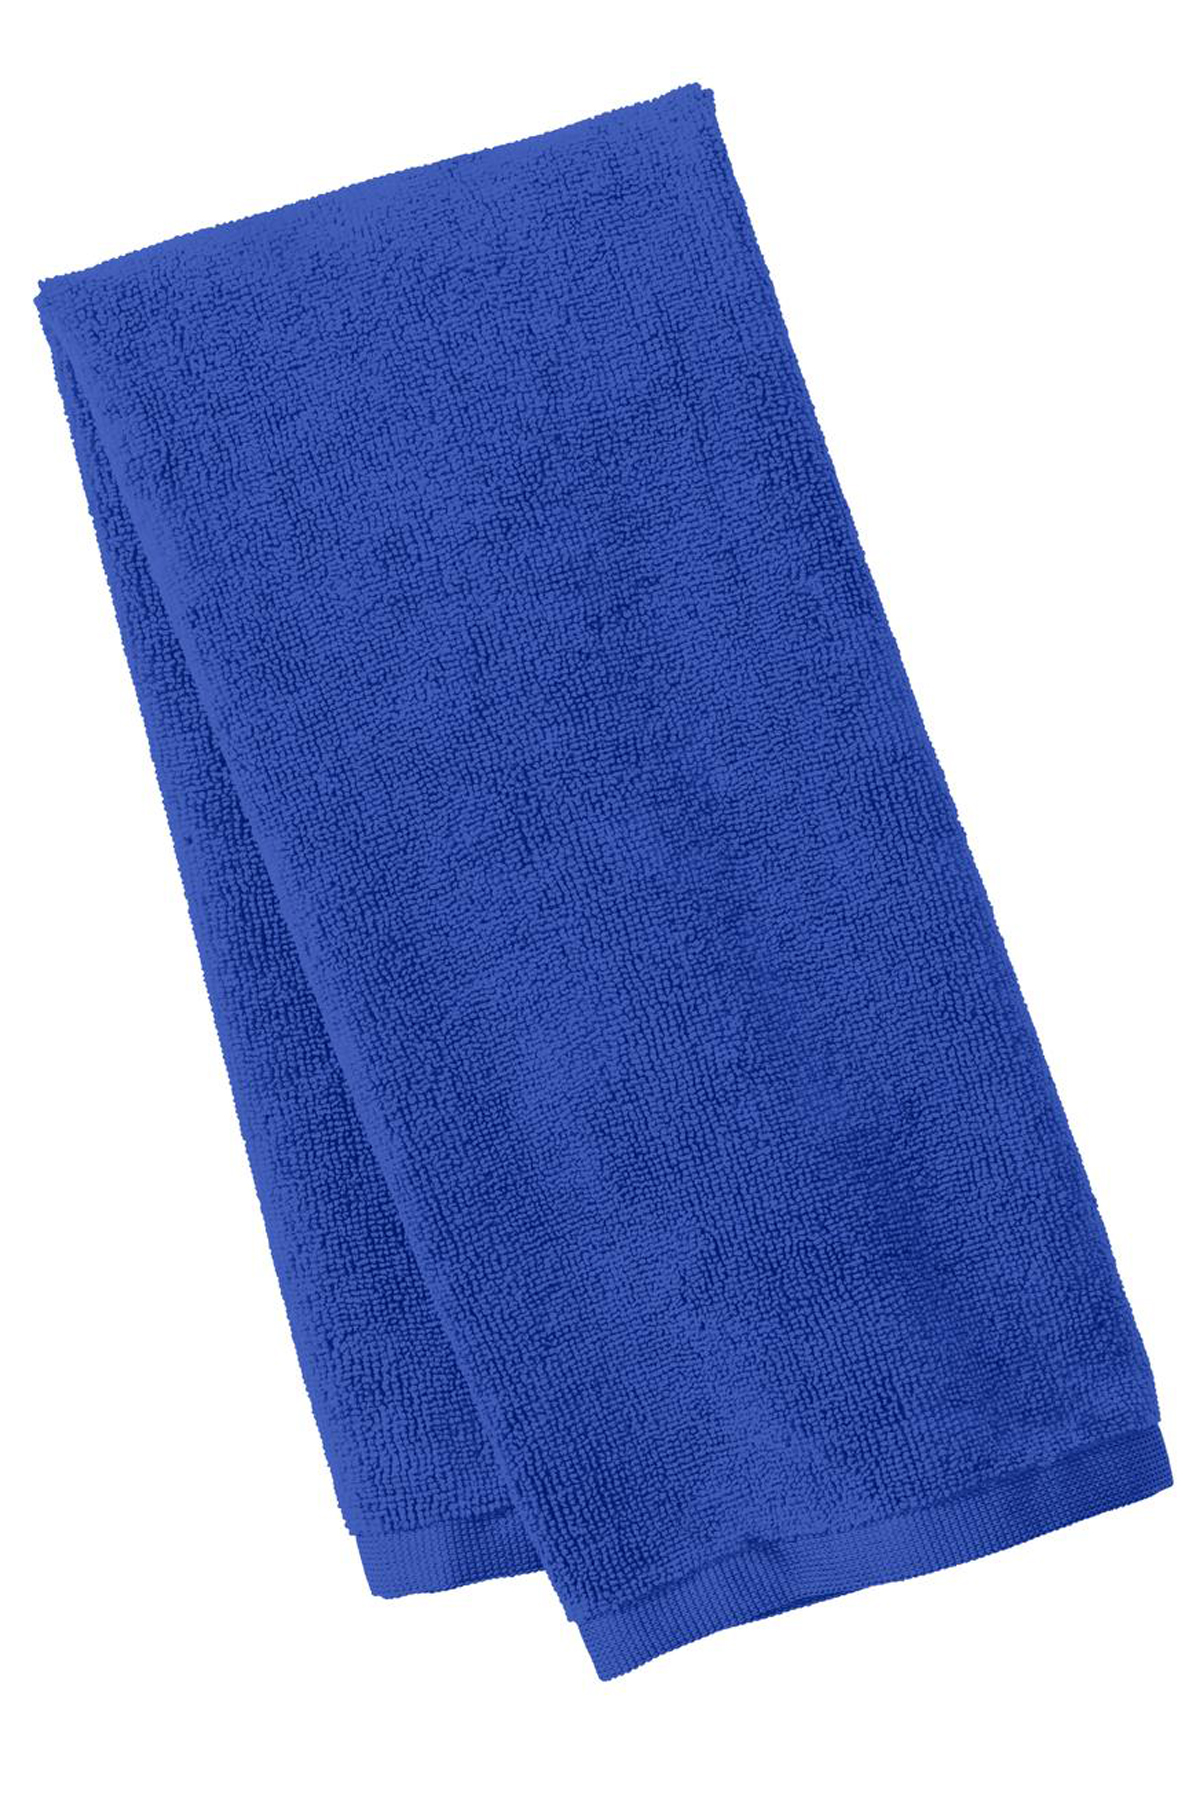 Accessories-Golf-Towels-9